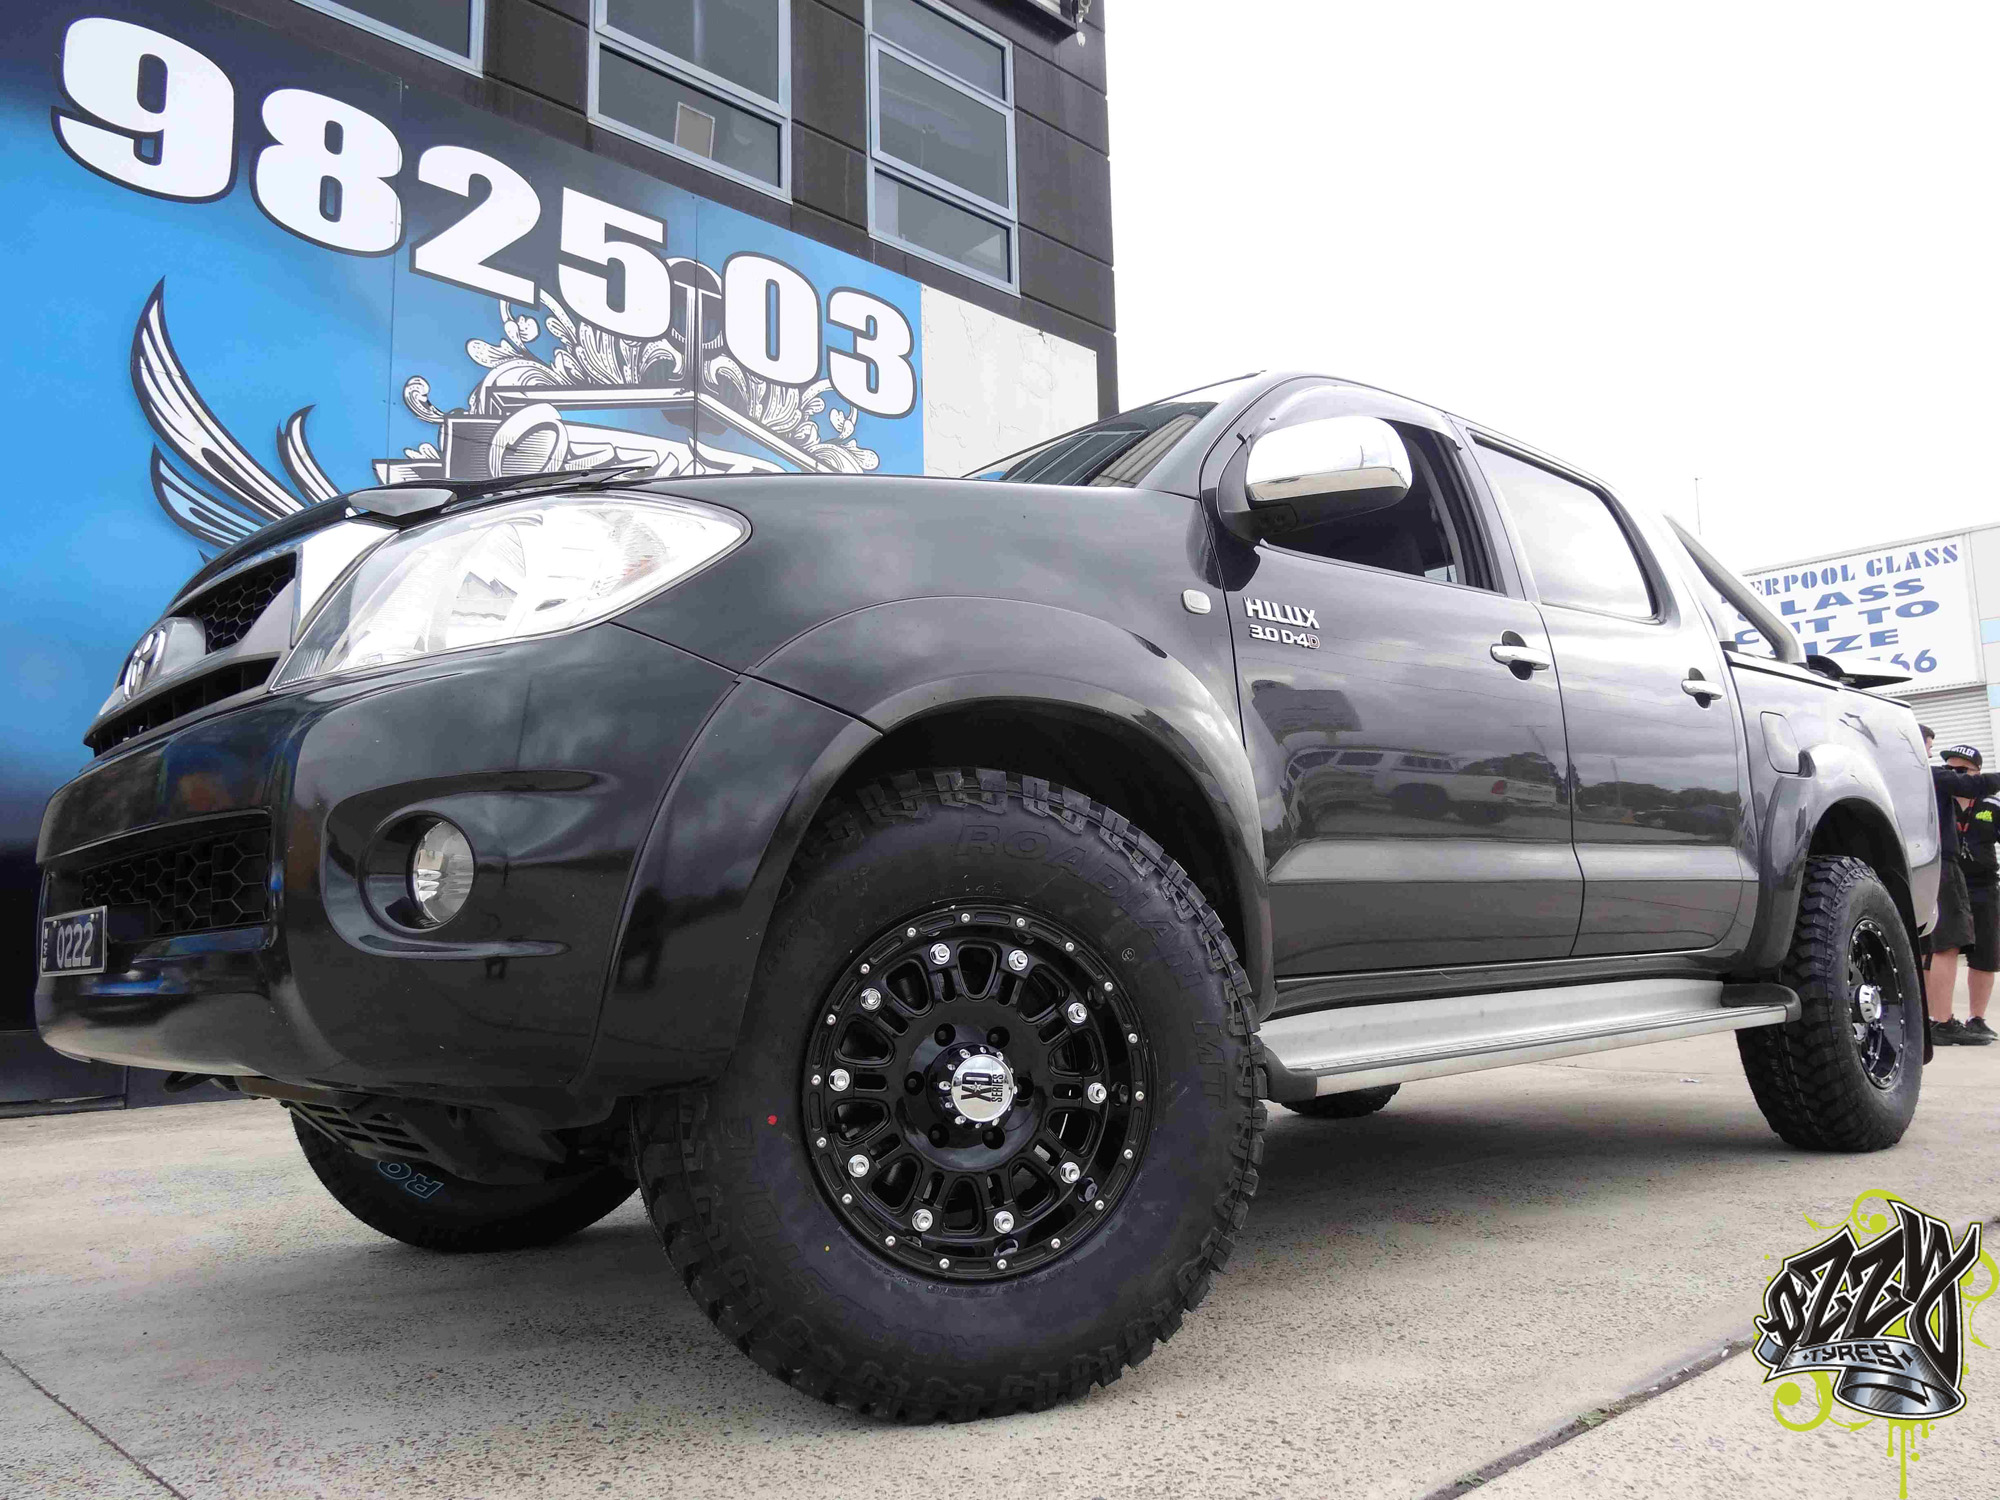 Get Your Toyota Hilux Wheels and Tyres From Ozzy Tyres Today!